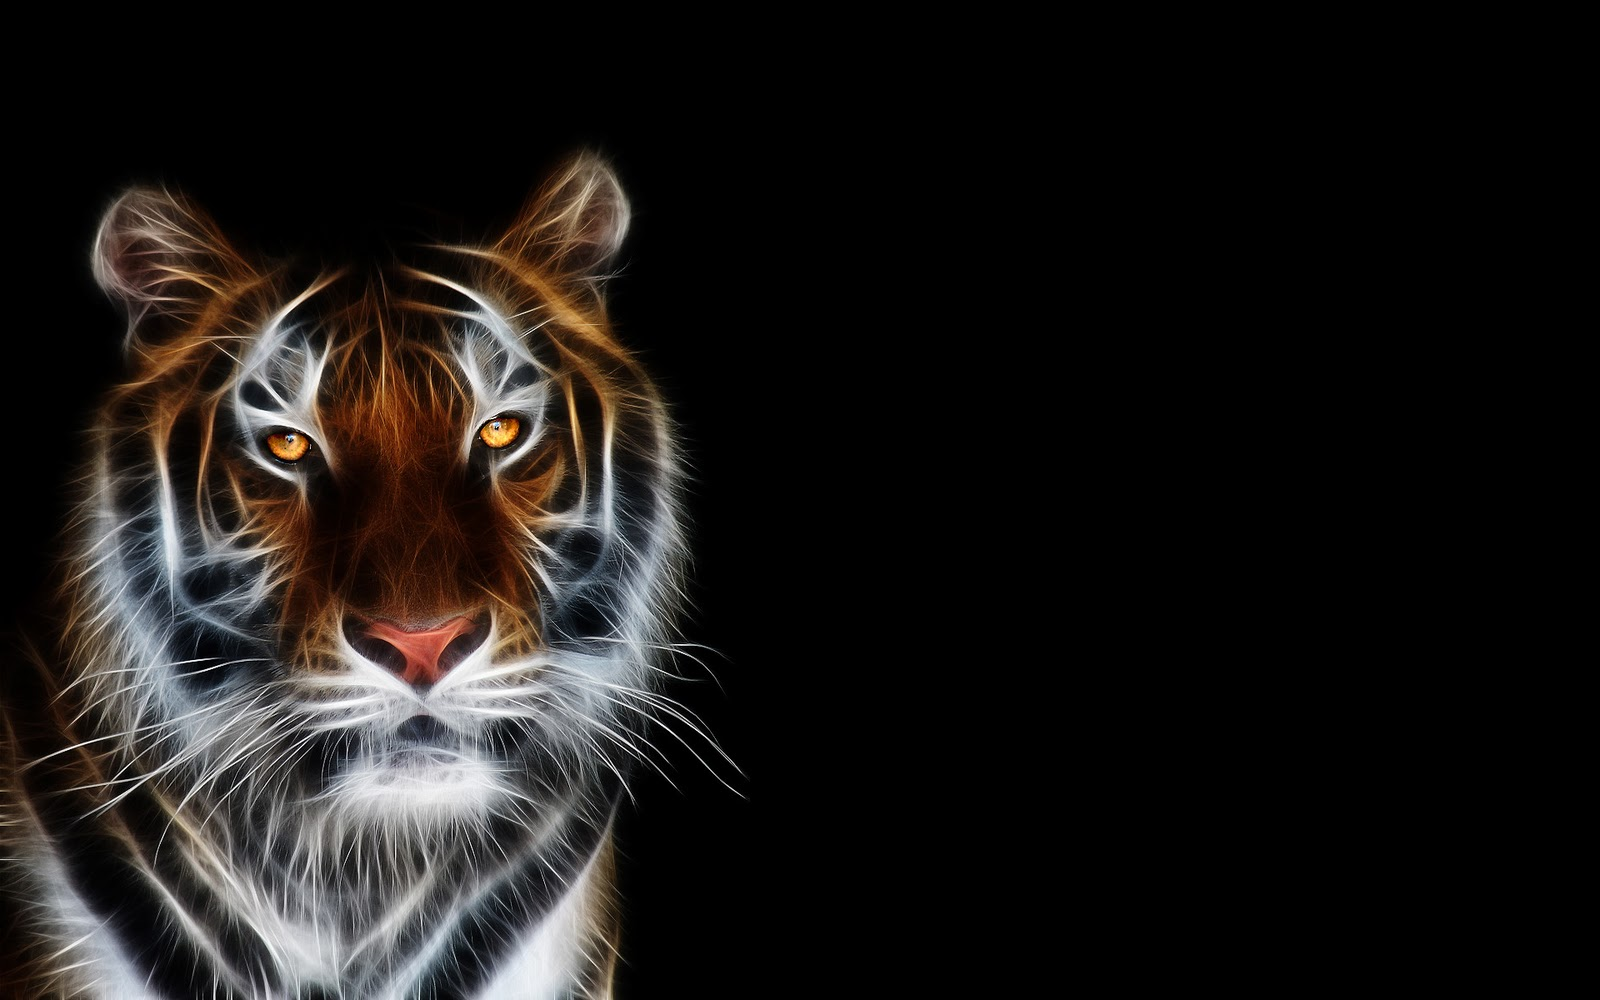 10 Latest Cool Wallpapers Of Animals Full Hd 1080p For Pc: FONDOS DE PANTALLA Wallpapers